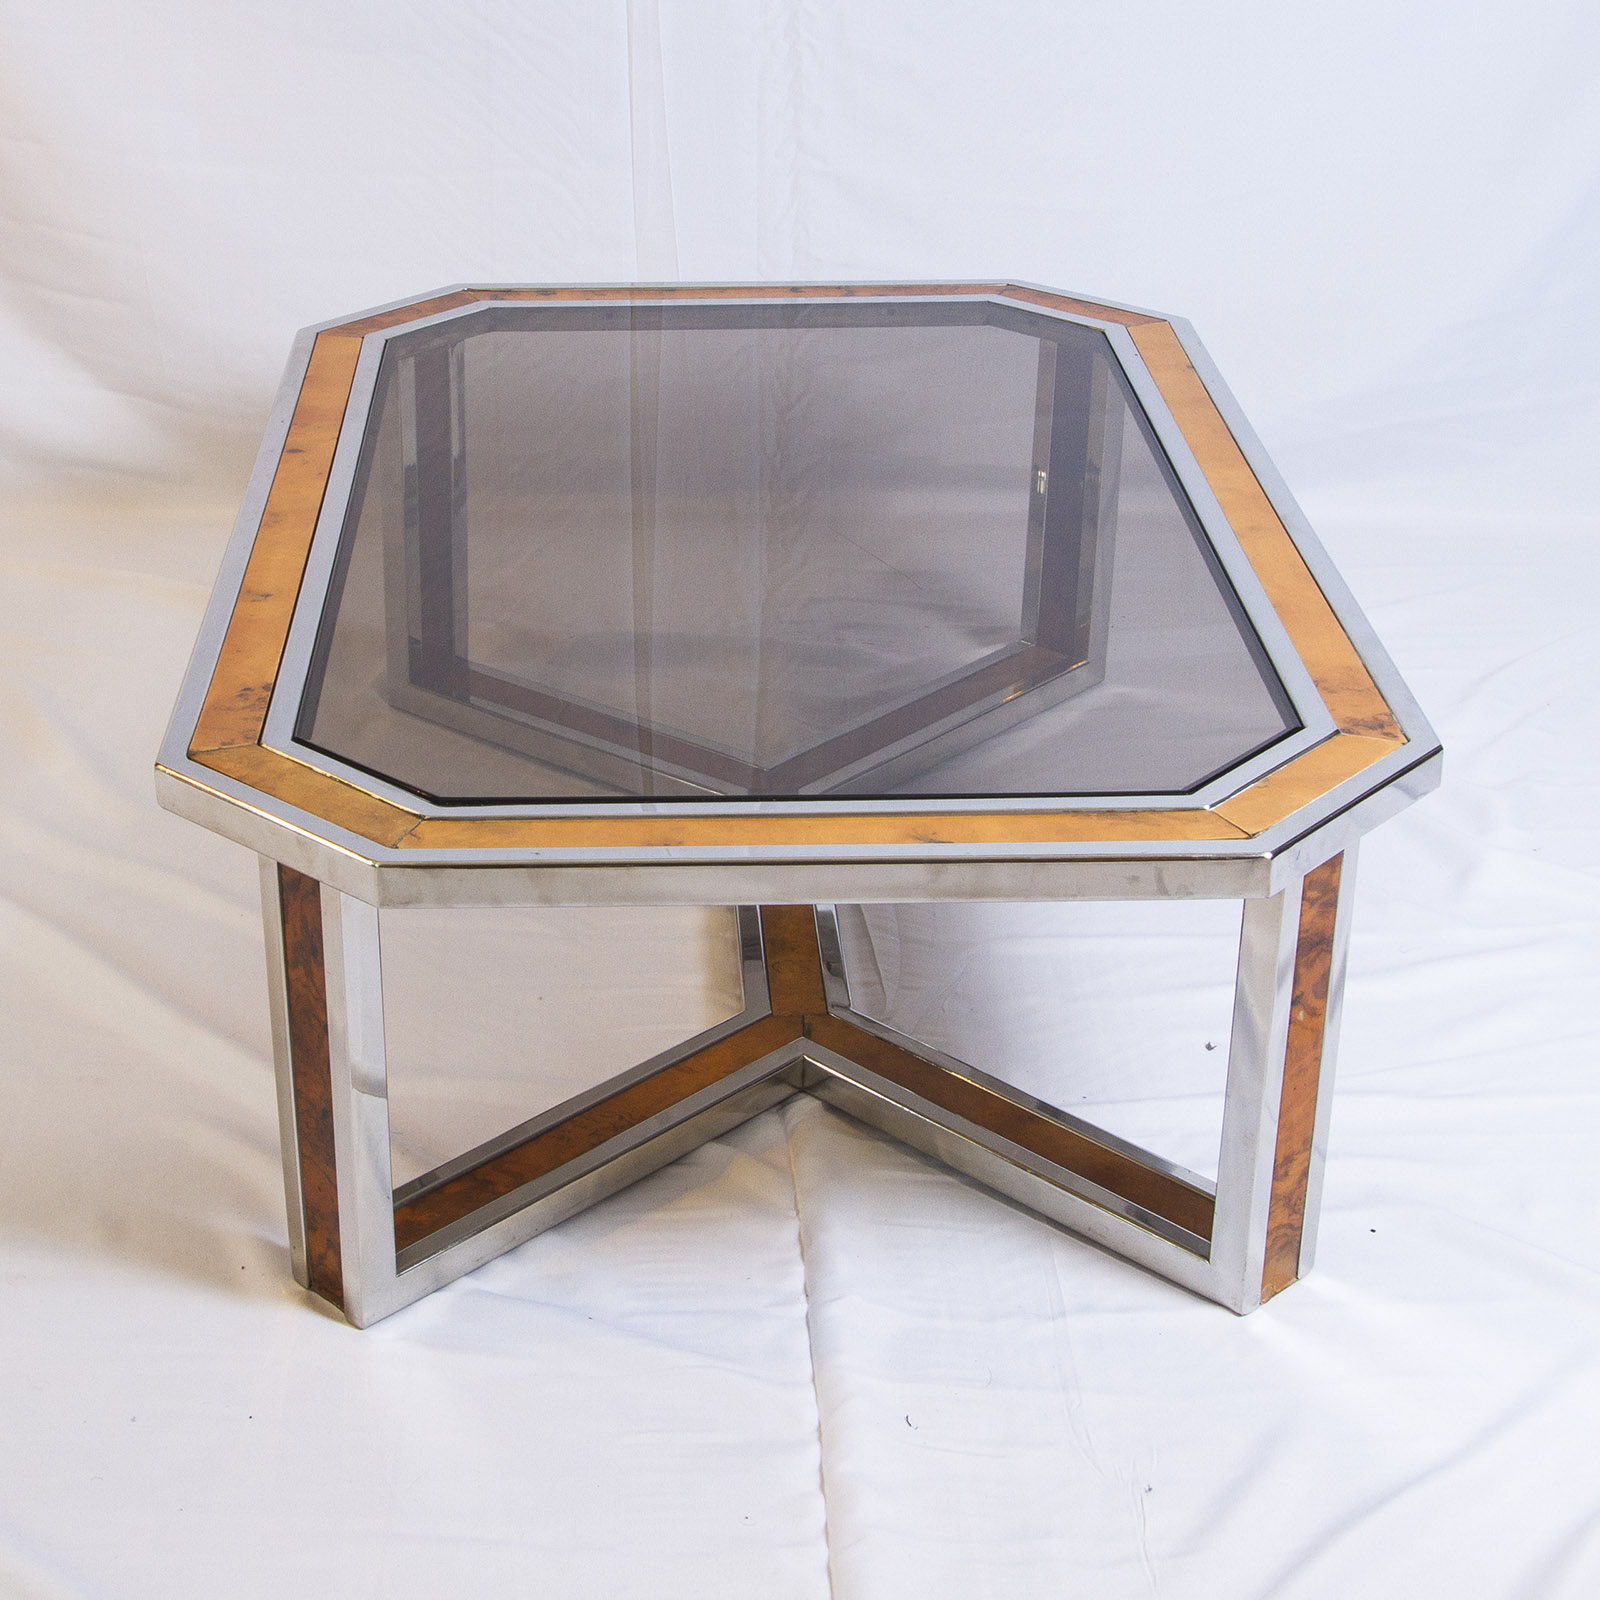 Chrome Coffee Table With Wood Top: Coffee Table By Romeo Rega